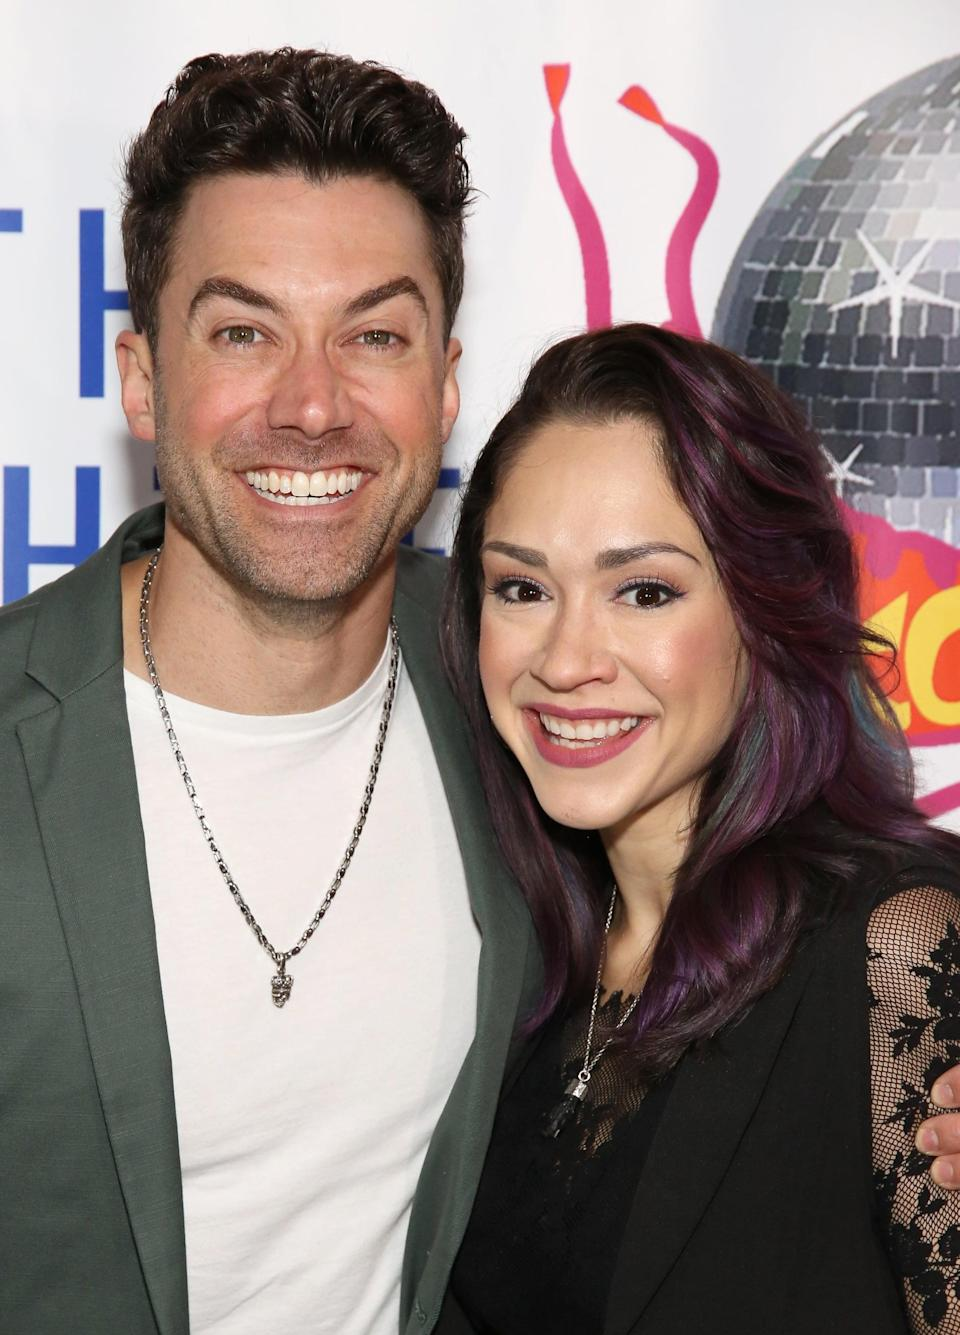 """<p>Both were contestants on <strong>American Idol</strong> (in different seasons, of course), but they didn't actually meet until 2010 when they were cast opposite each other in the Broadway revival of <strong>Hair</strong>. Young proposed live on an <strong>American Idol</strong> finale special in 2012, and they married the following year. In an interview with <strong>Playbill</strong>, the couple revealed that <a href=""""http://www.playbill.com/article/how-diane-paulus-put-two-actors-on-the-path-to-marriage"""" class=""""link rapid-noclick-resp"""" rel=""""nofollow noopener"""" target=""""_blank"""" data-ylk=""""slk:their first kiss was about as unromantic as it gets"""">their first kiss was about as unromantic as it gets</a>: """"On our very first day of rehearsal, [director Diane Paulus] walked up to us and said, 'You two are going to have to be very comfortable with each other very quickly, so I'm just going to need you to go ahead and kiss each other right now and just get it over with in front of everyone,'"""" DeGarmo said.</p>"""